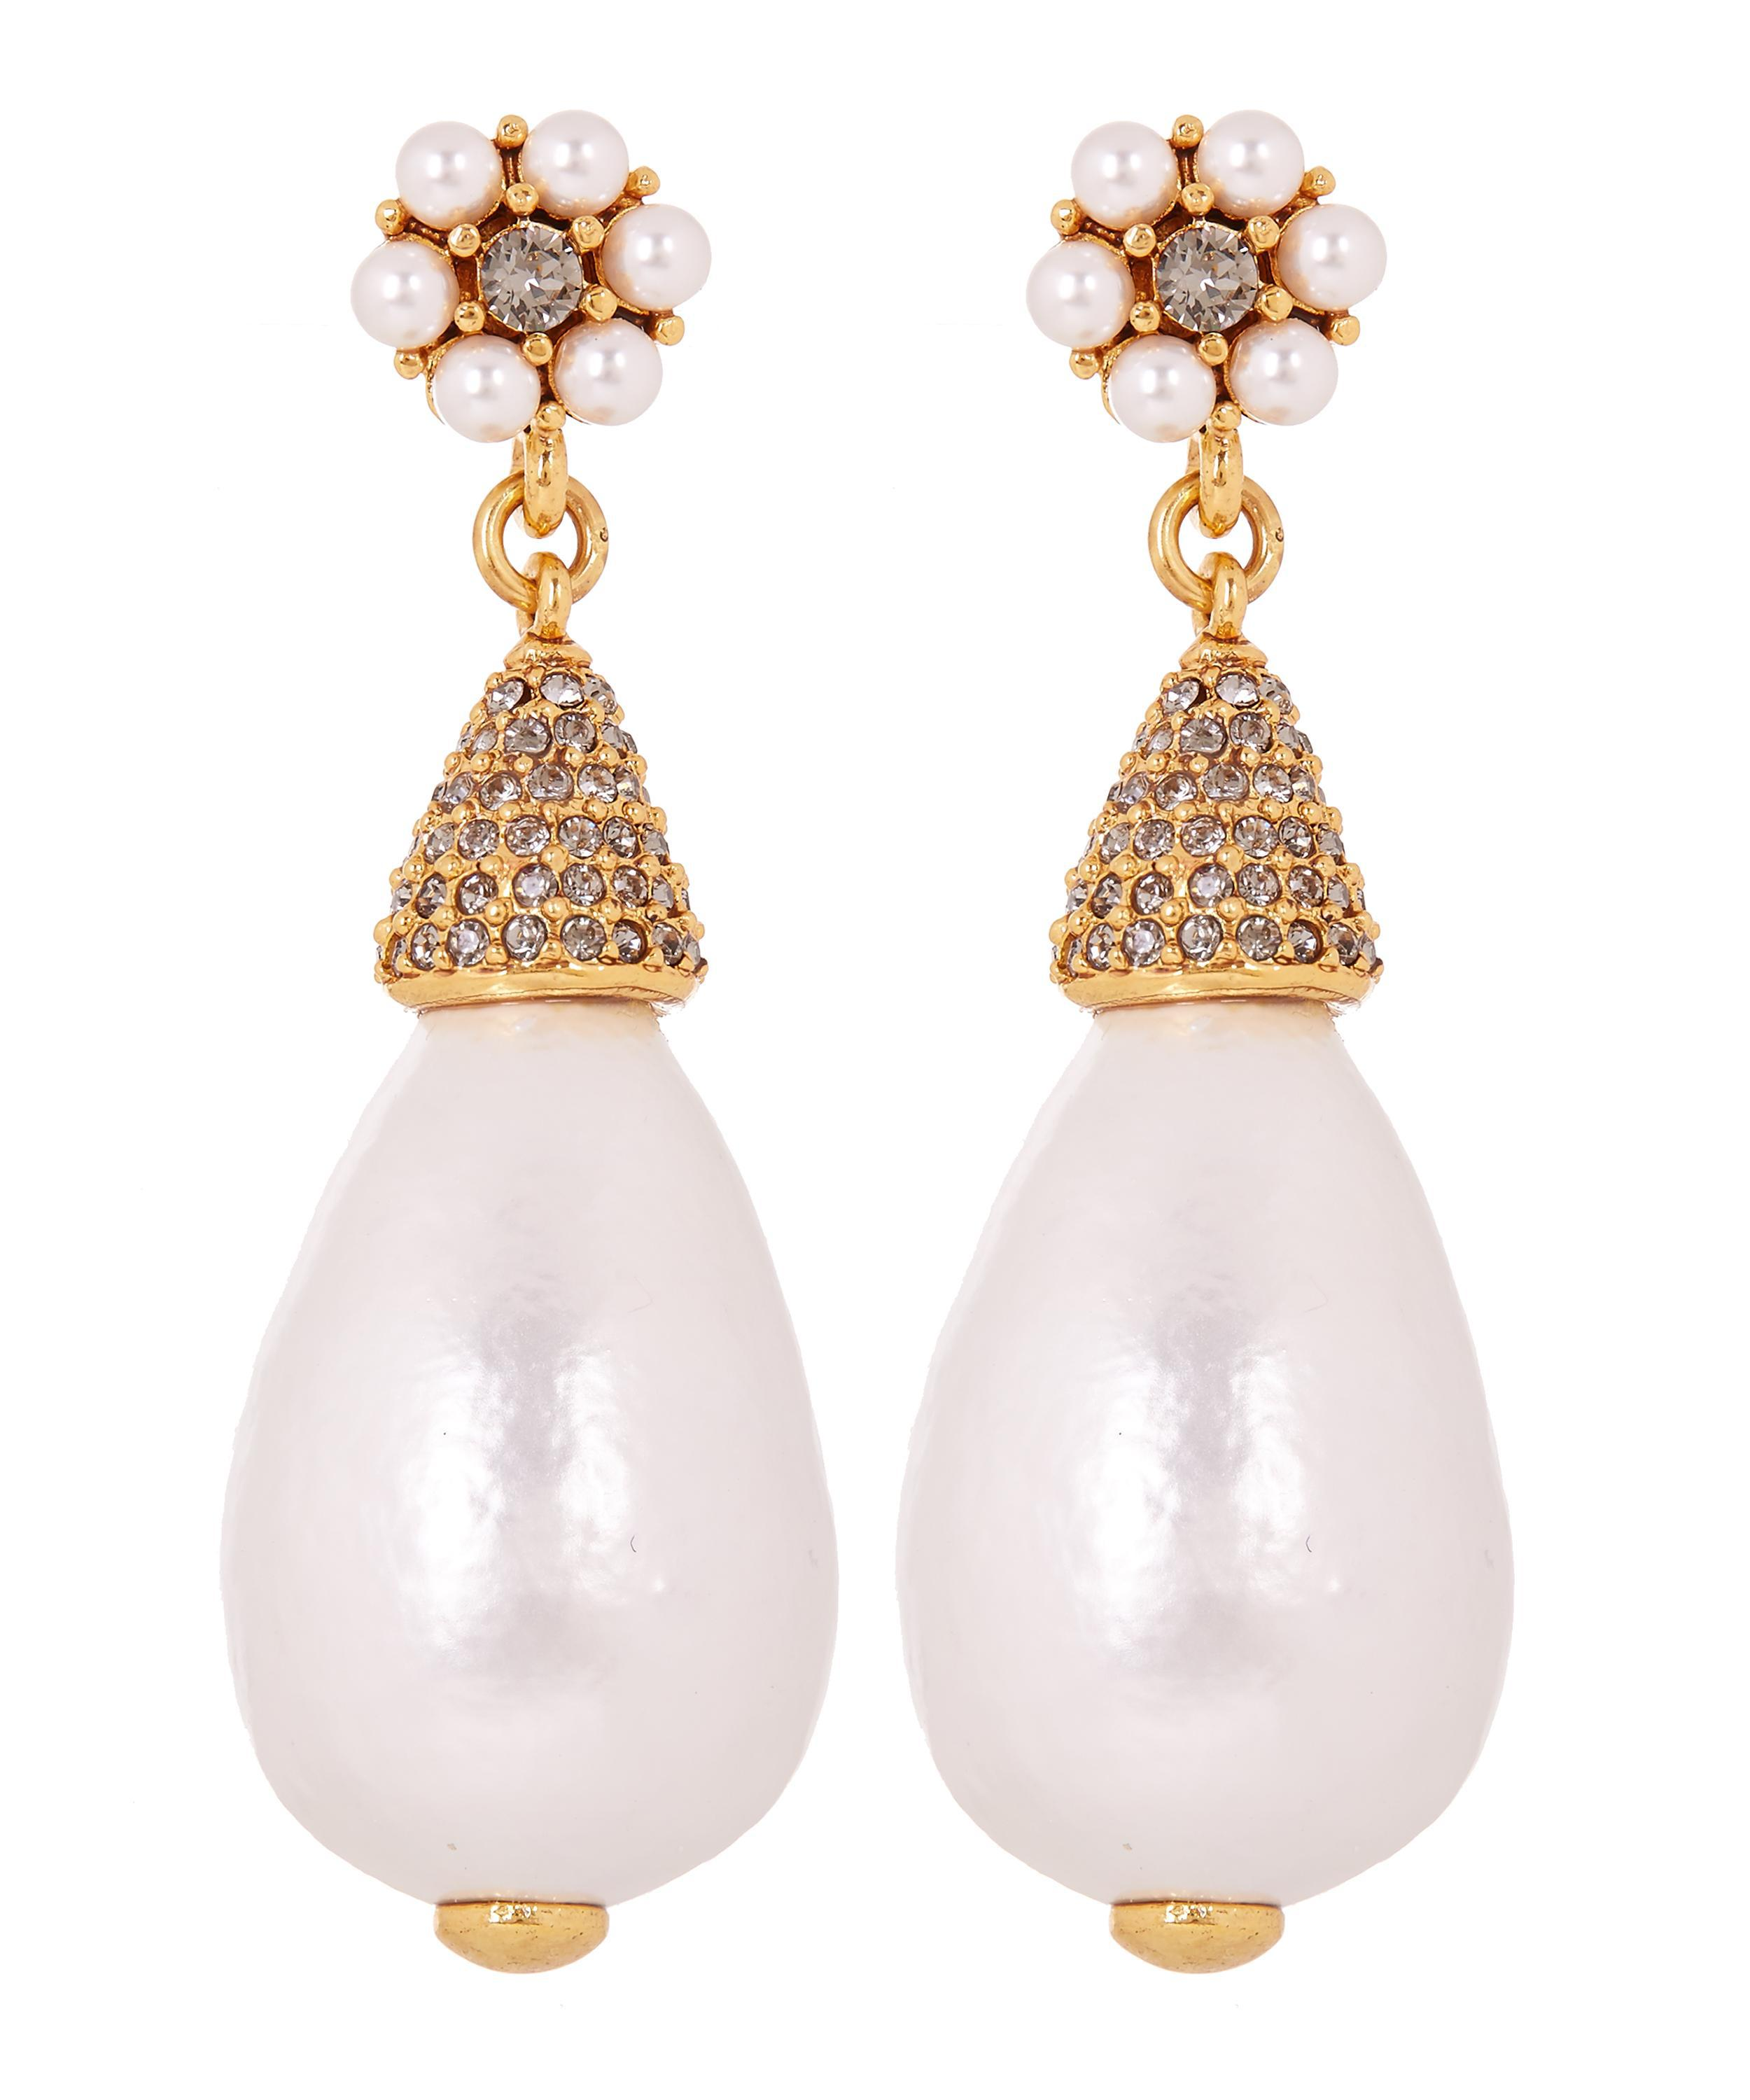 24376ddb35f7 Lyst - Oscar de la Renta Gold-plated Baroque Pearl Drop Earrings in ...